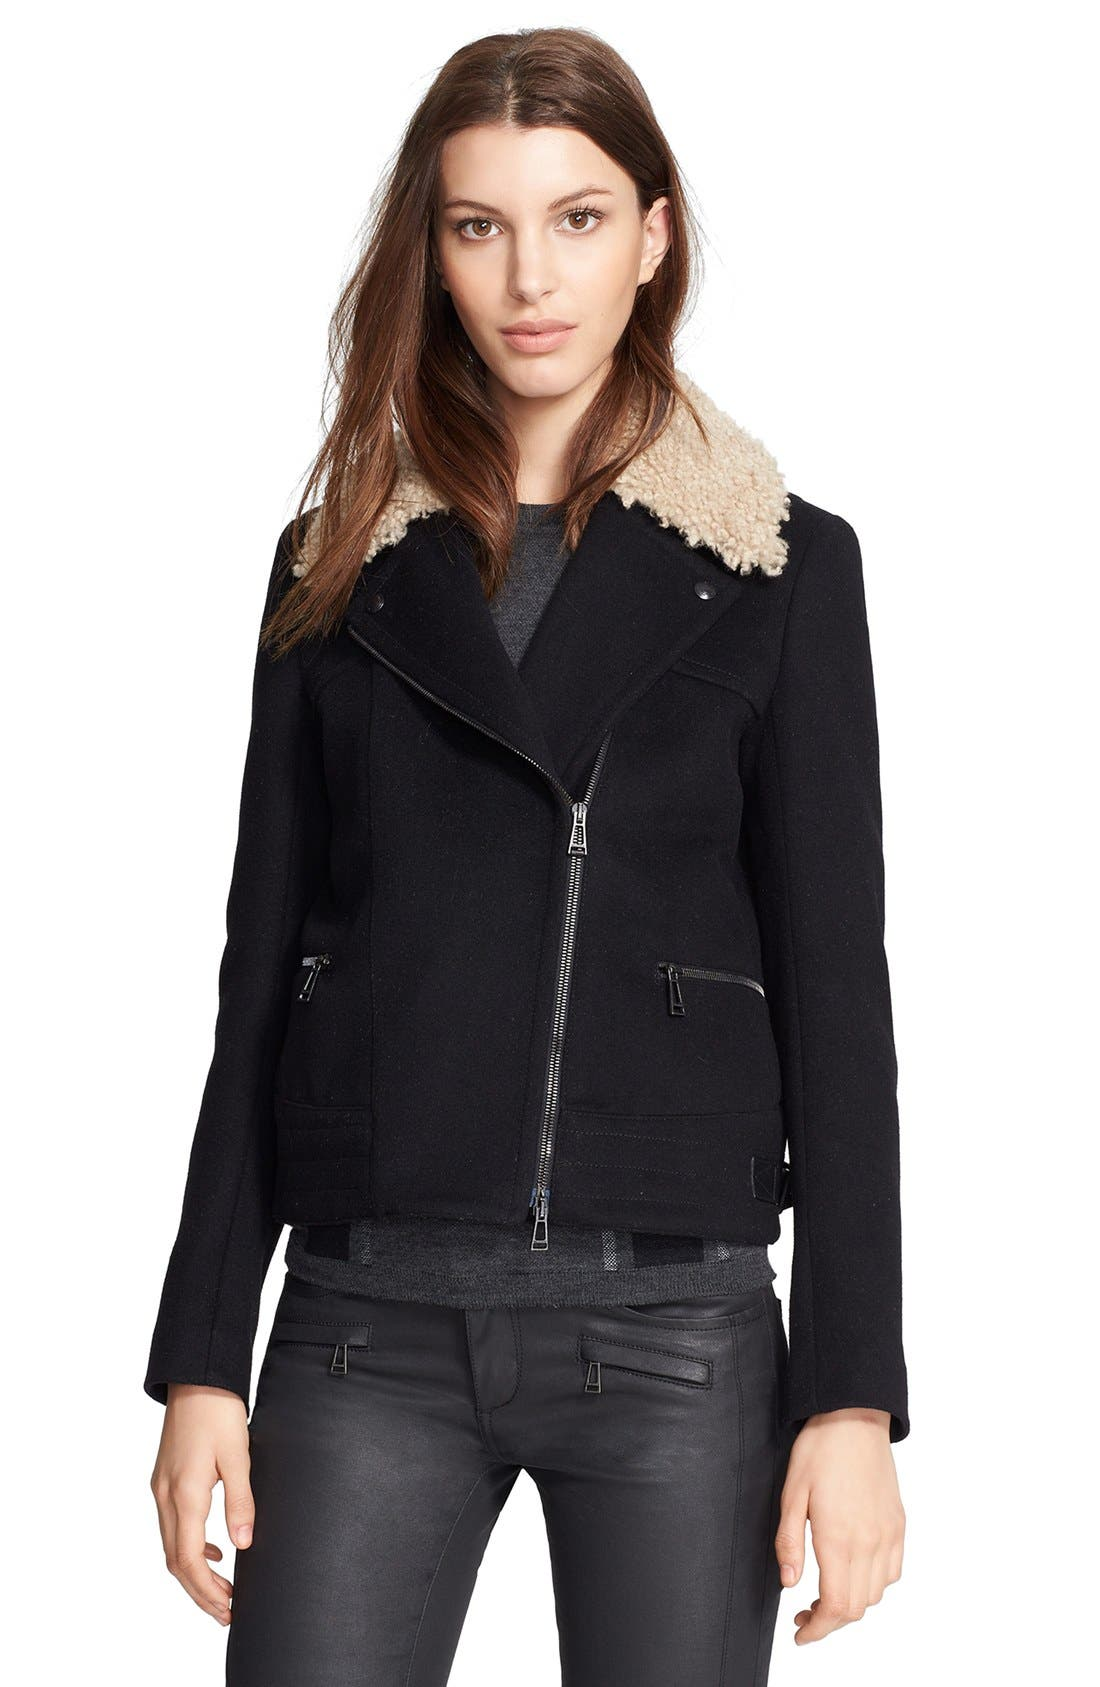 Main Image - Belstaff 'Kingsley' Lightweight Tweed Moto Jacket with Genuine Shearling Collar